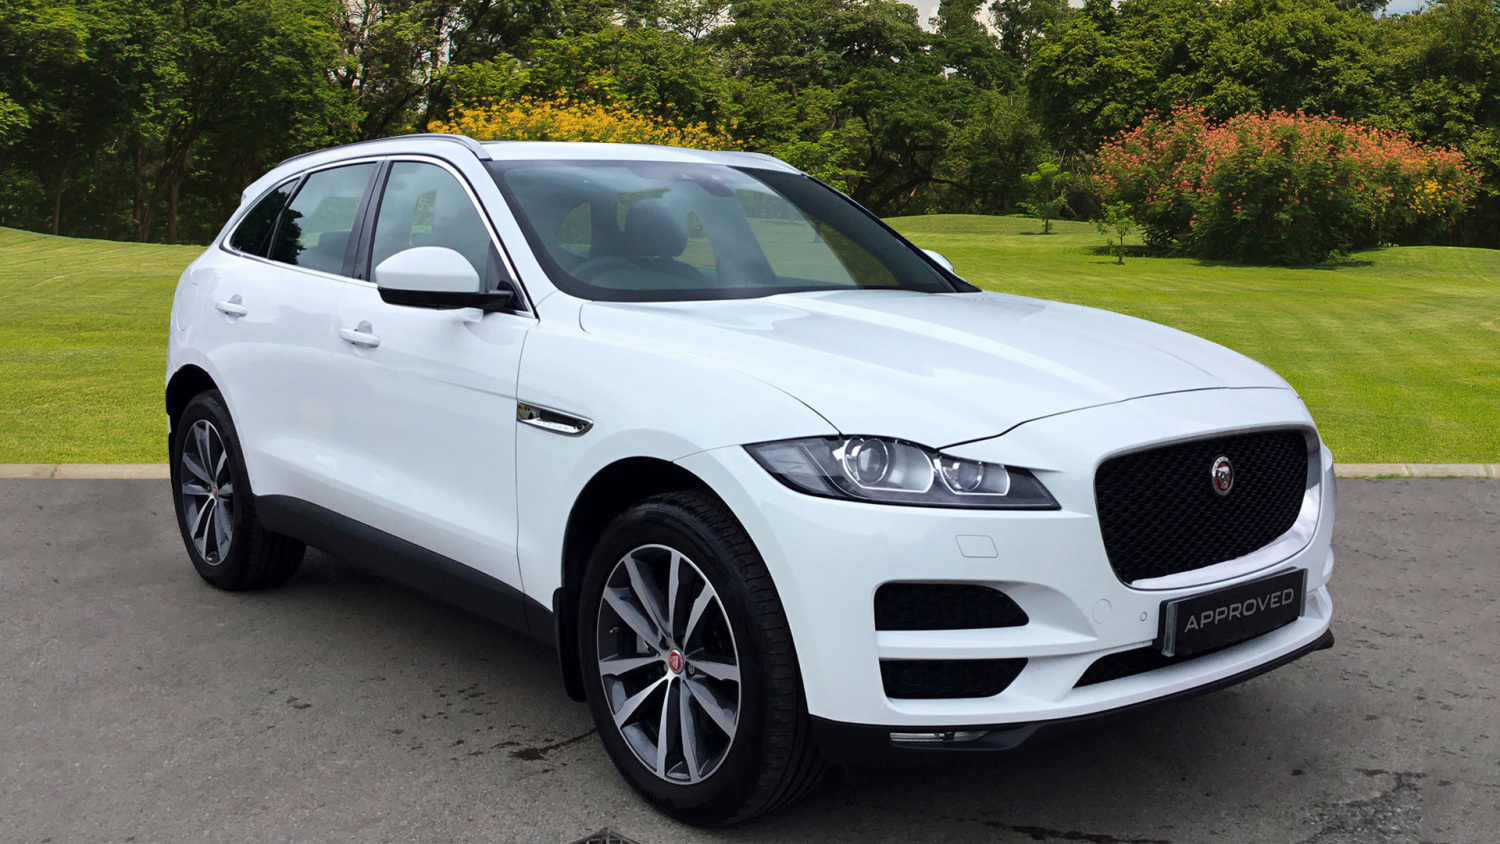 used jaguar f pace 2 0d portfolio 5dr auto awd diesel estate for sale in scotland macklin motors. Black Bedroom Furniture Sets. Home Design Ideas